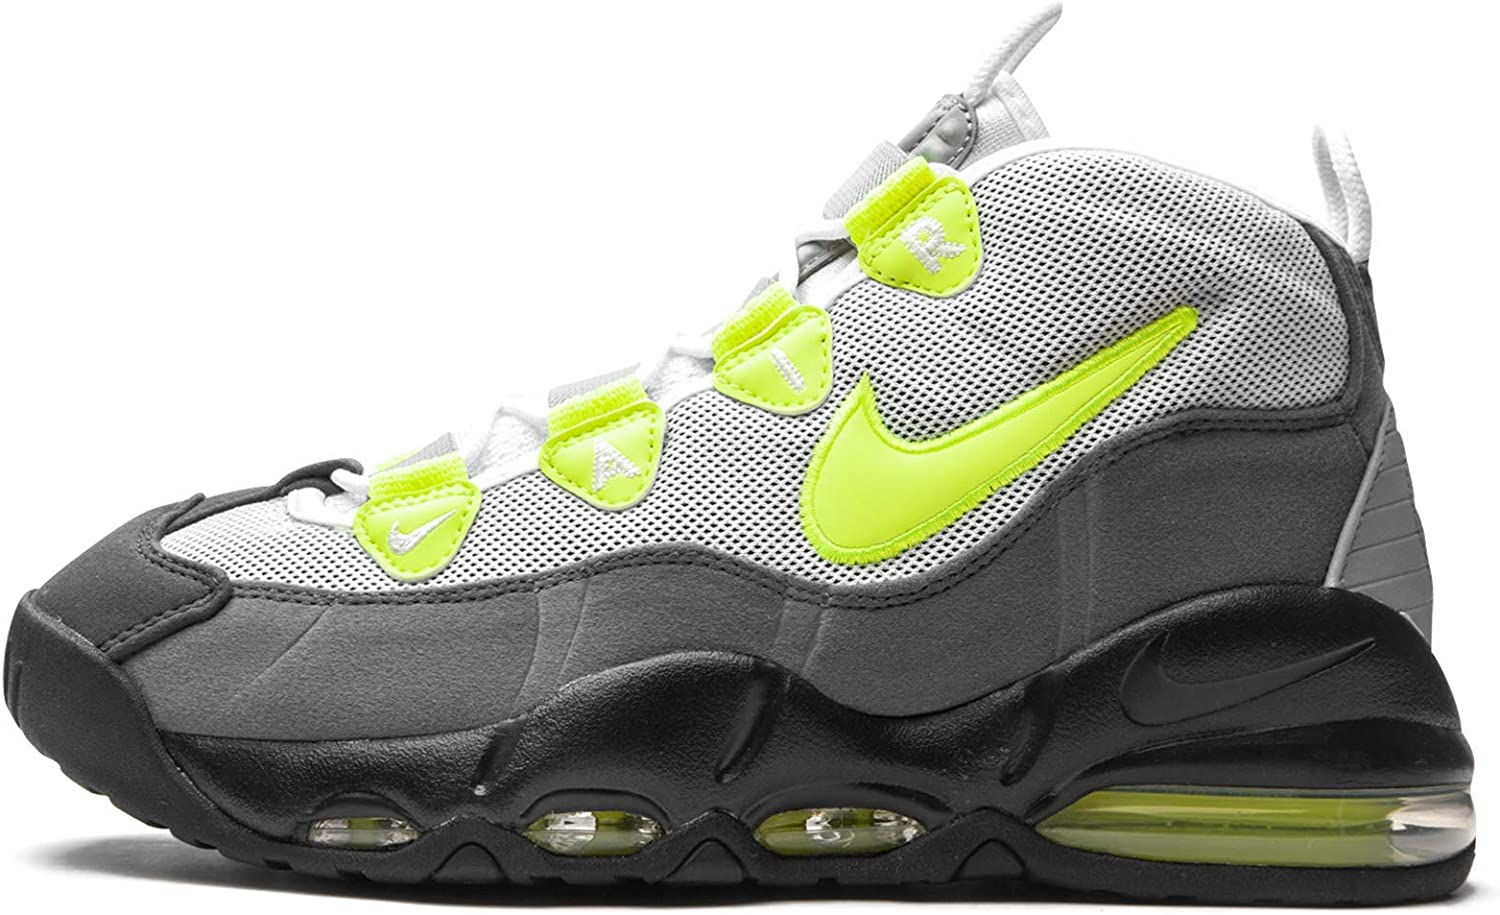 Nike Max 43% OFF Men's Shoes Air CK0891-002 Uptempo Many popular brands Max '95